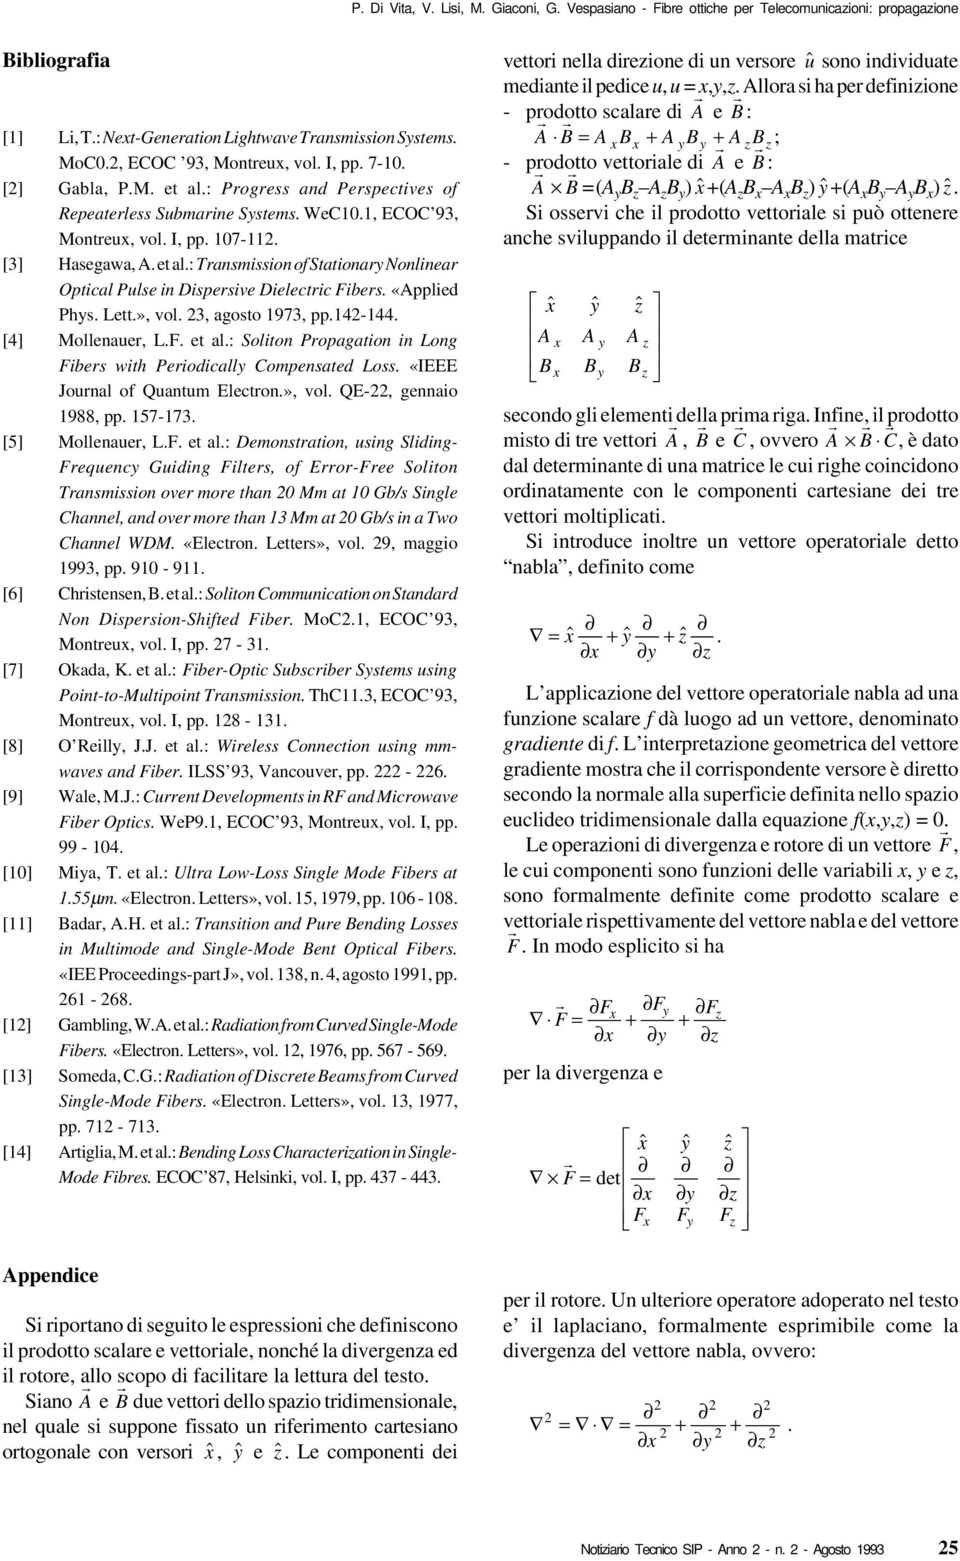 «Applied Phys. Lett.», vol. 3, agosto 1973, pp.14-144. [4] Mollenaue, L.F. et al.: Soliton Popagation in Long Fibes with Peiodically Compensated Loss. «IEEE Jounal of Quantum Electon.», vol. QE-, gennaio 1988, pp.